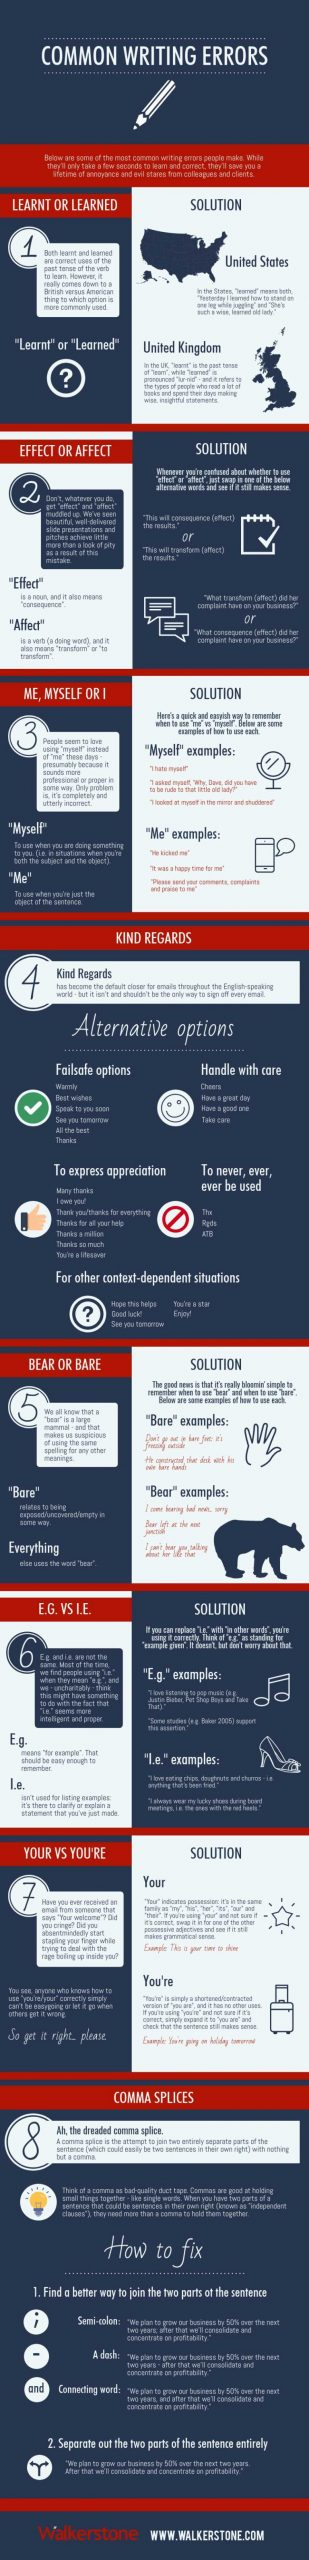 Common writing errors infographic from Walkerstone